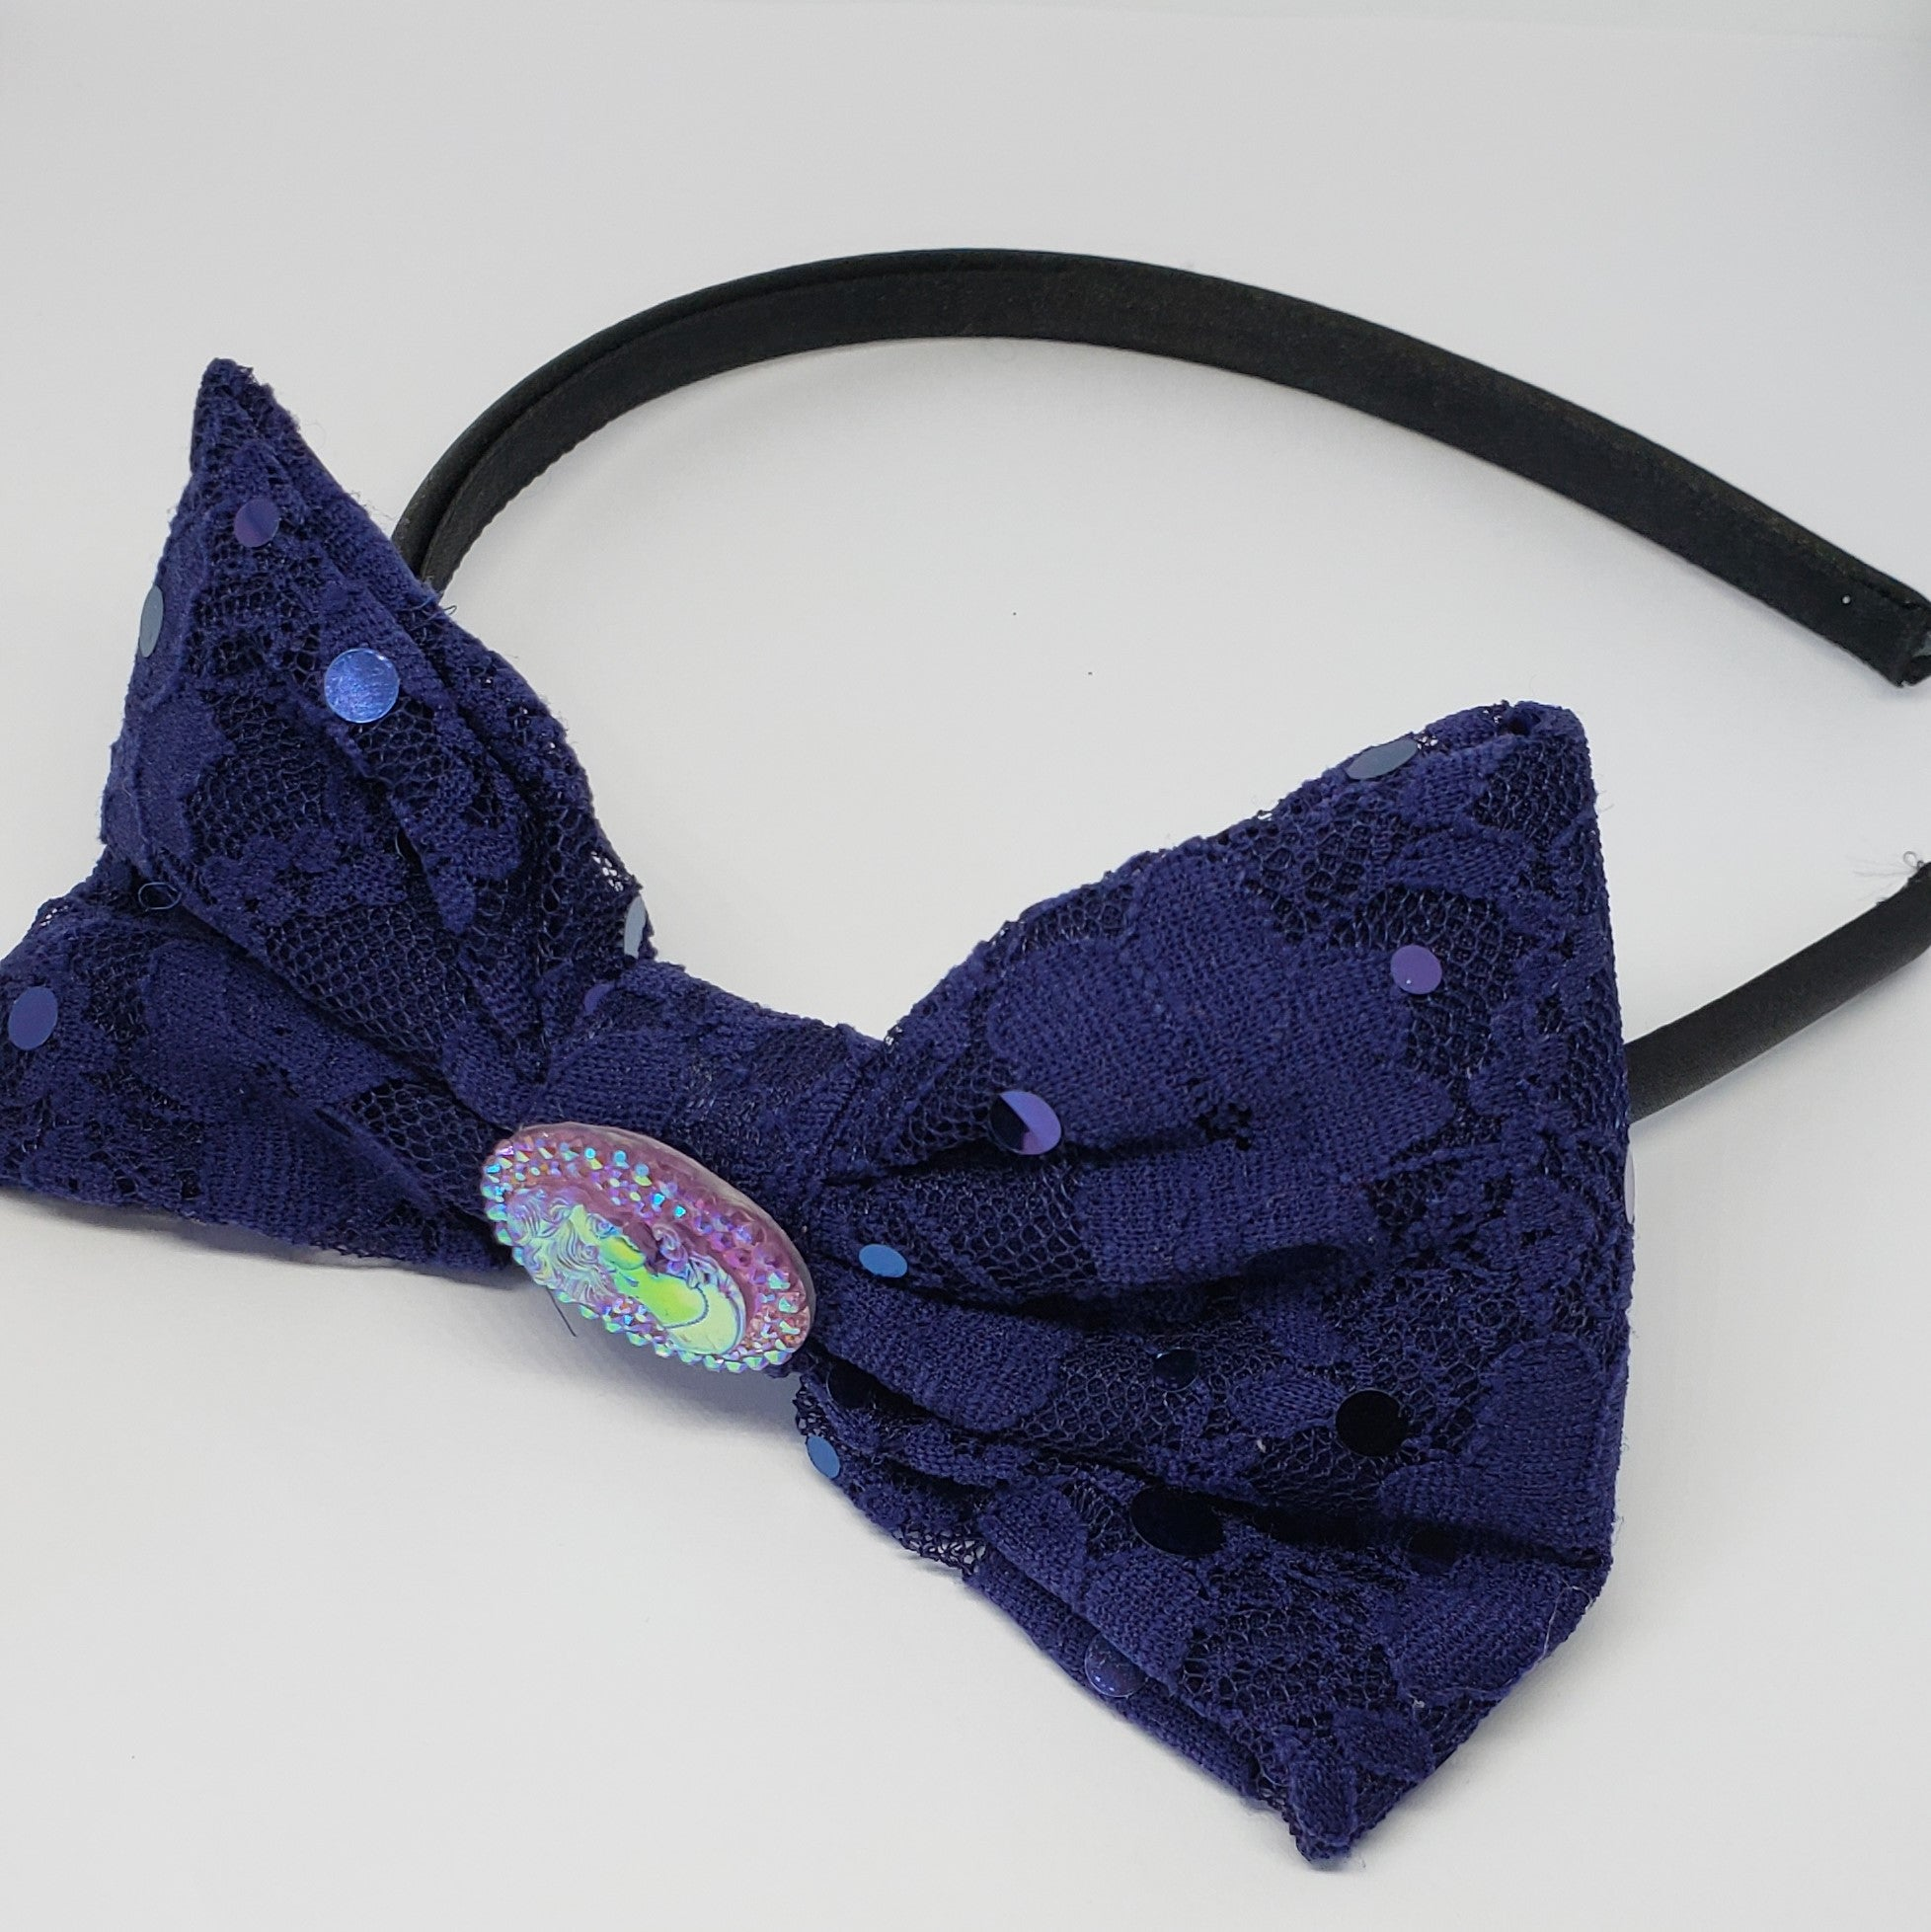 Sophia-Lynn Cameo Fancy Navy Lace Headband - Houzz of DVA Boutique